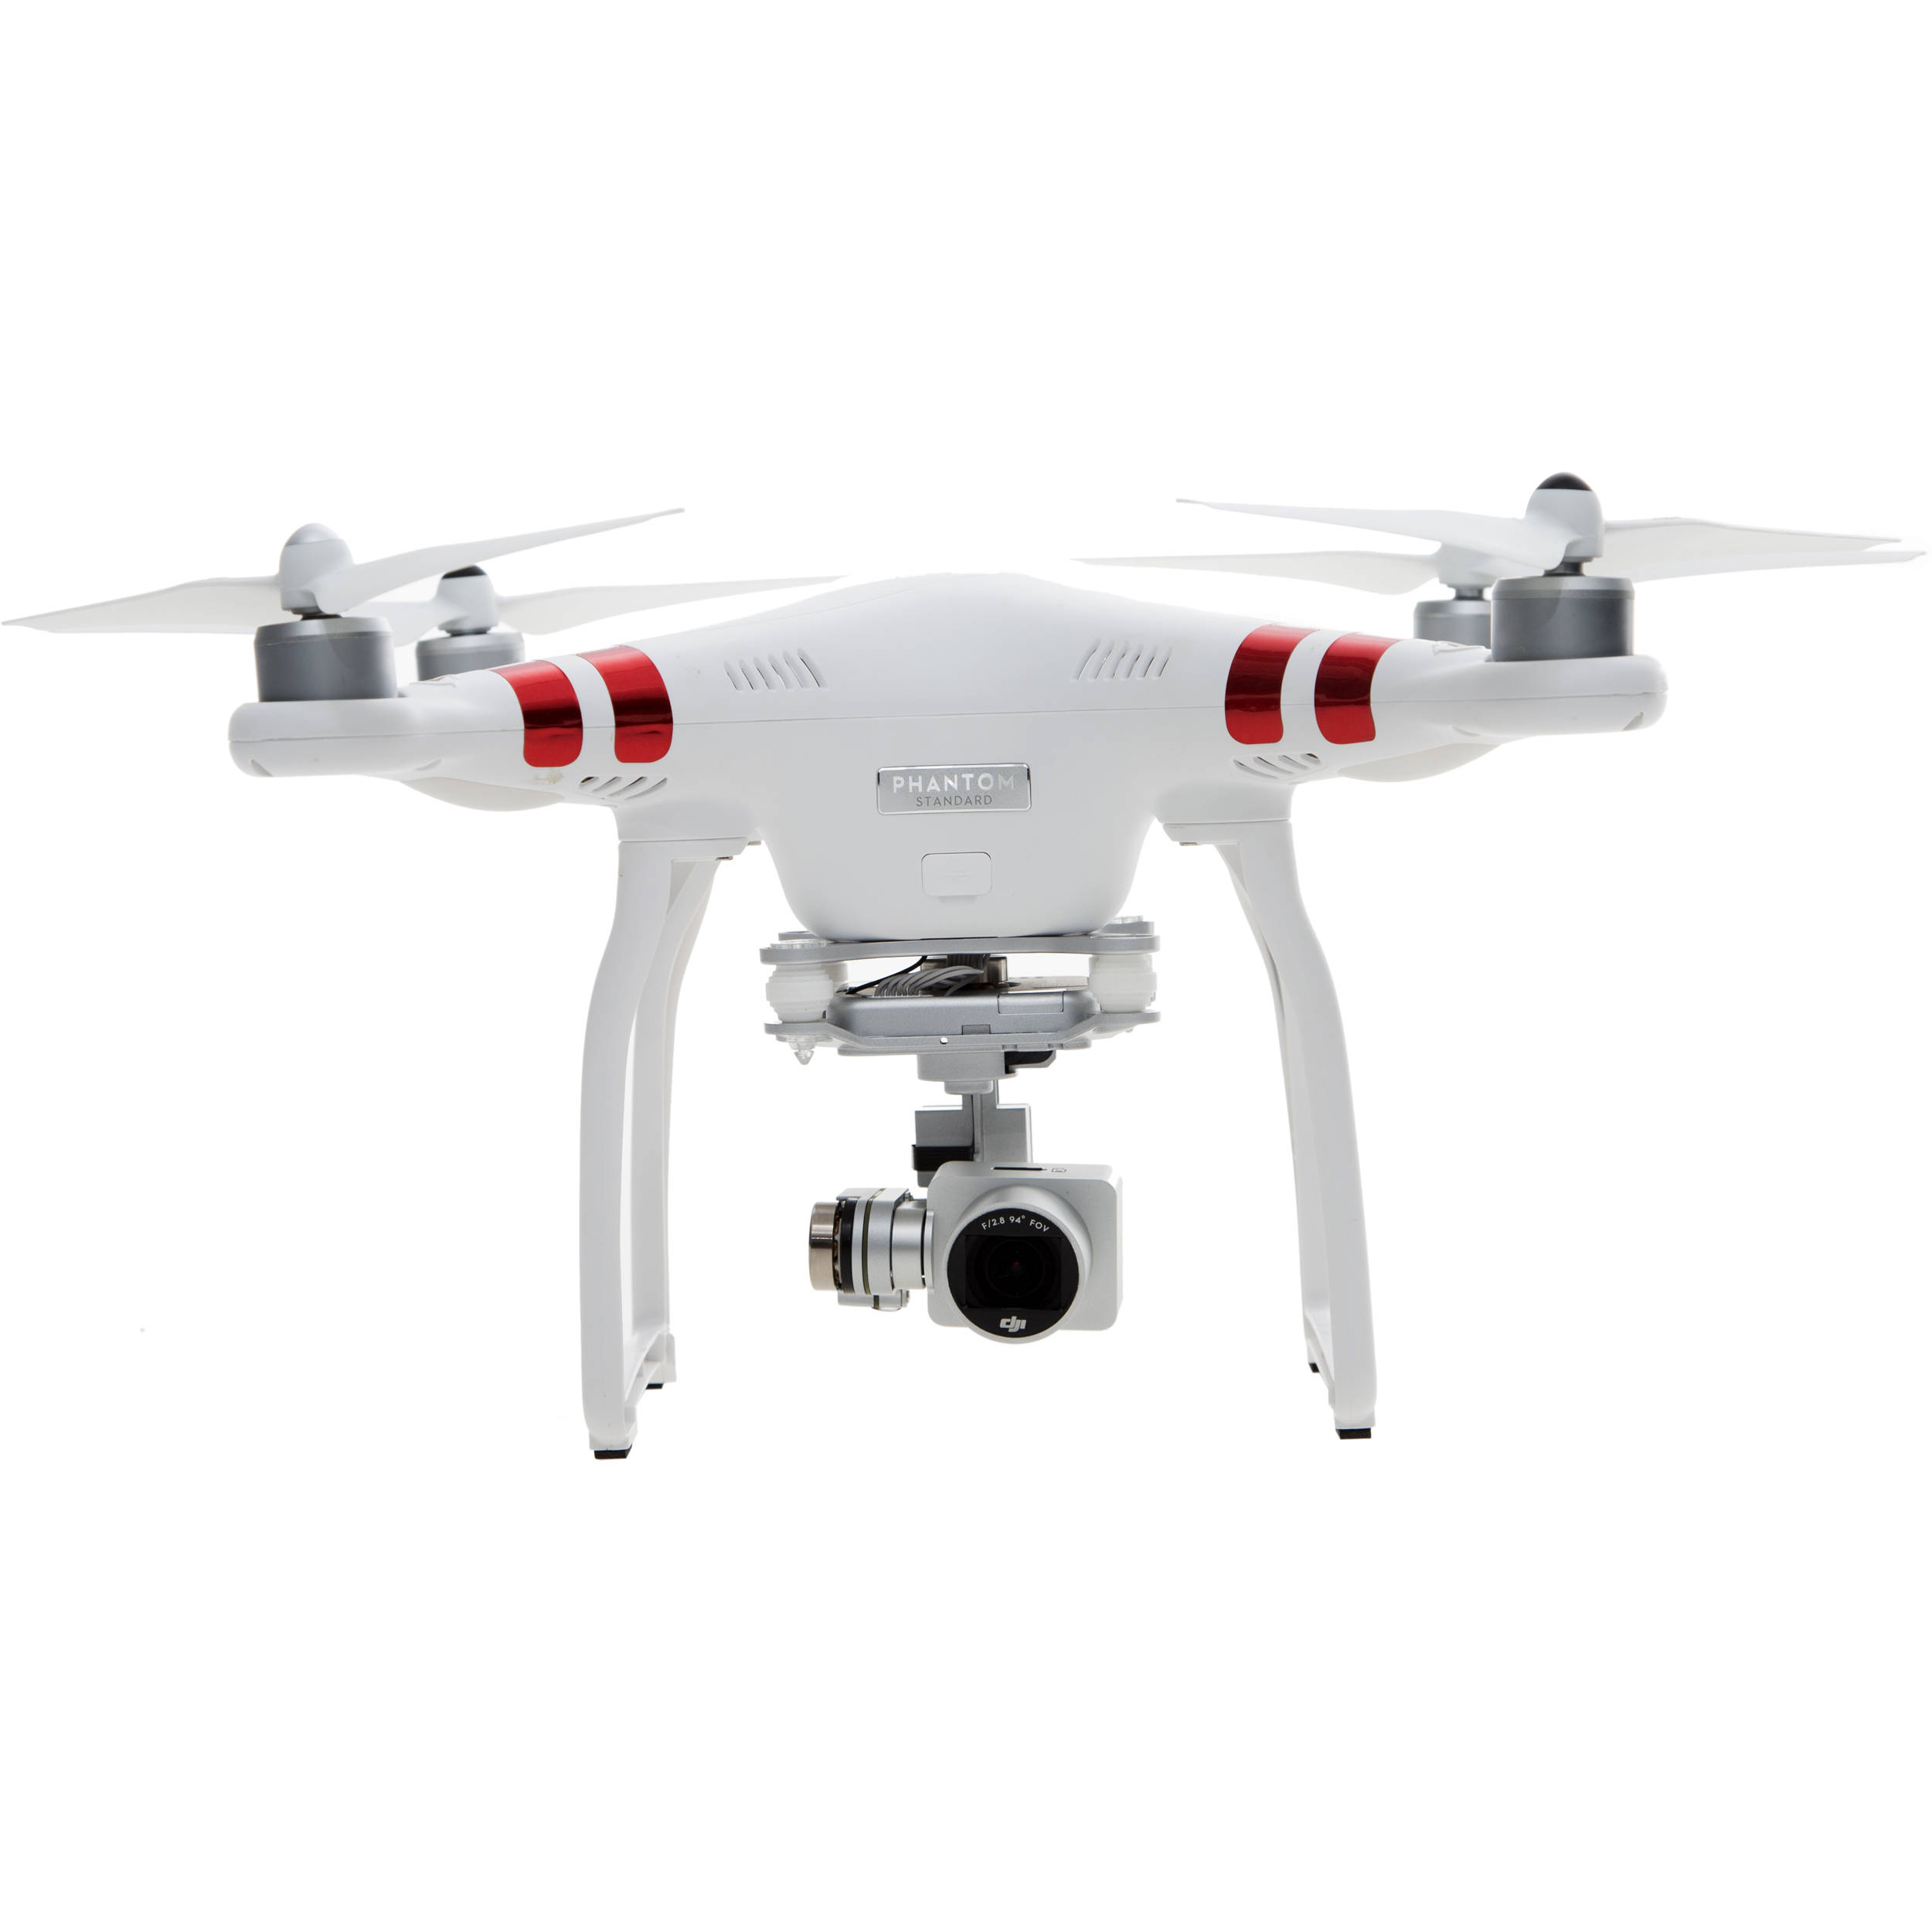 dji phantom gps drone with Dji Cp Pt 000168 Phantom 3 Standard With on Drone With Camera also Wiring Diagram Flying Wing further 4009 as well Eachine E58 Another Mavic Clone further Dji Inspire 1 Pro With 1 Remote And X5 Camera.